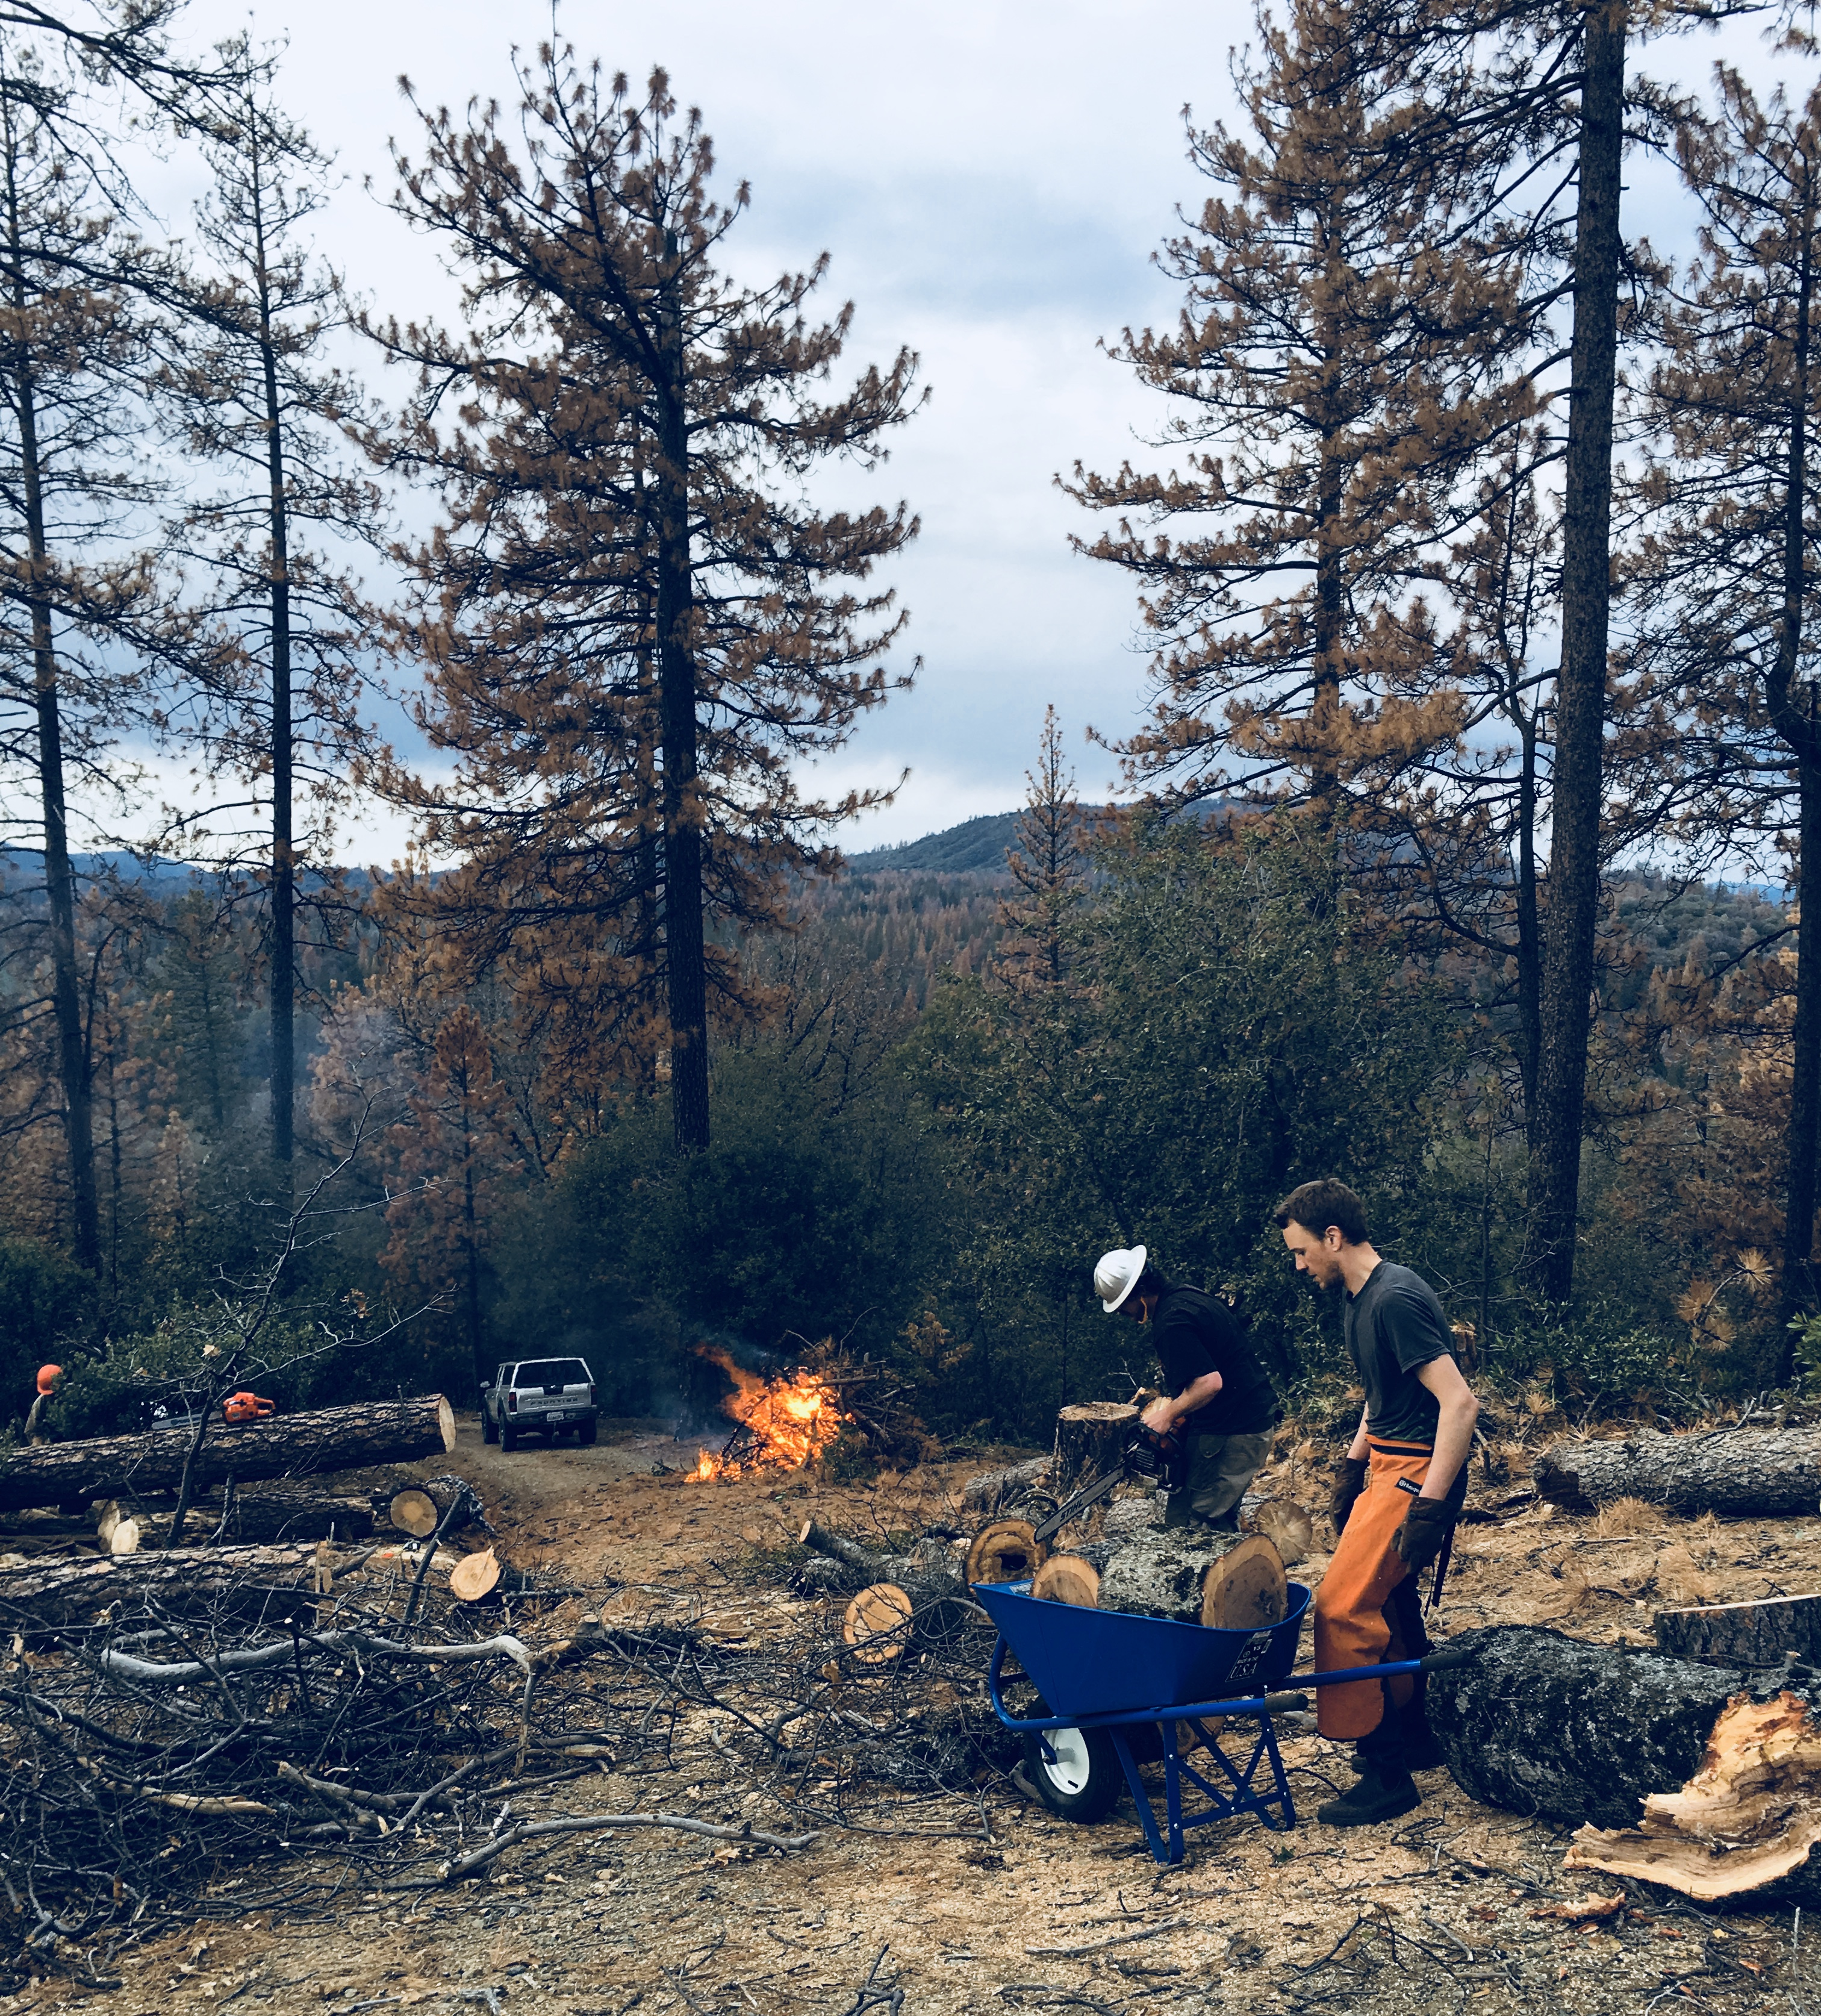 Bark Beetle Epidemic: January 2016 at my home in Midpines, CA